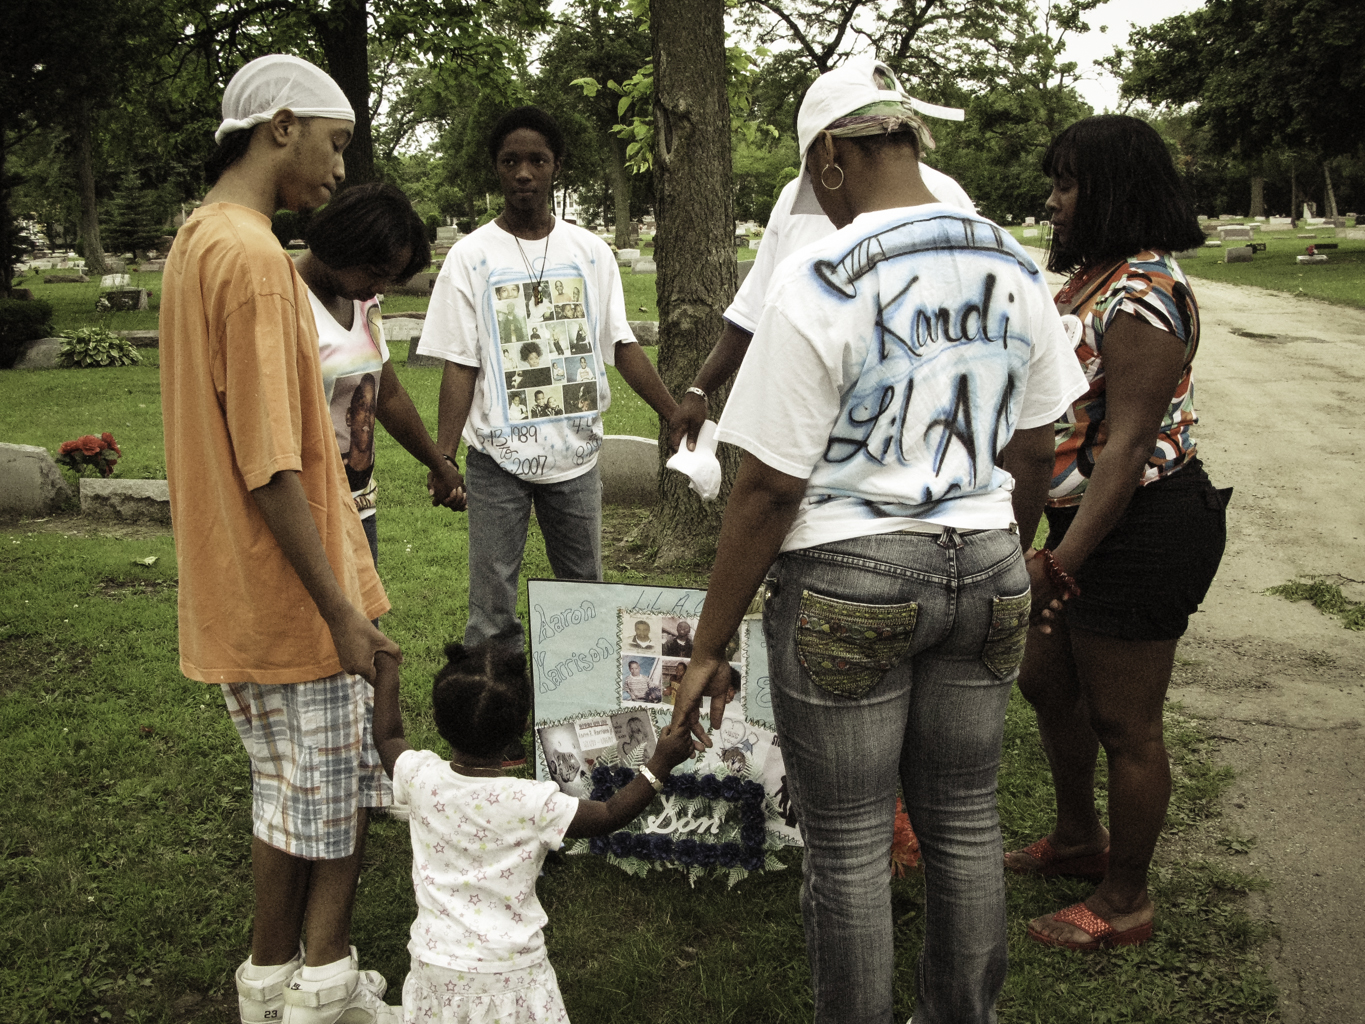 Annie and family pray at Lil' A.O.'s grave. They ask for answers and beg for justice.